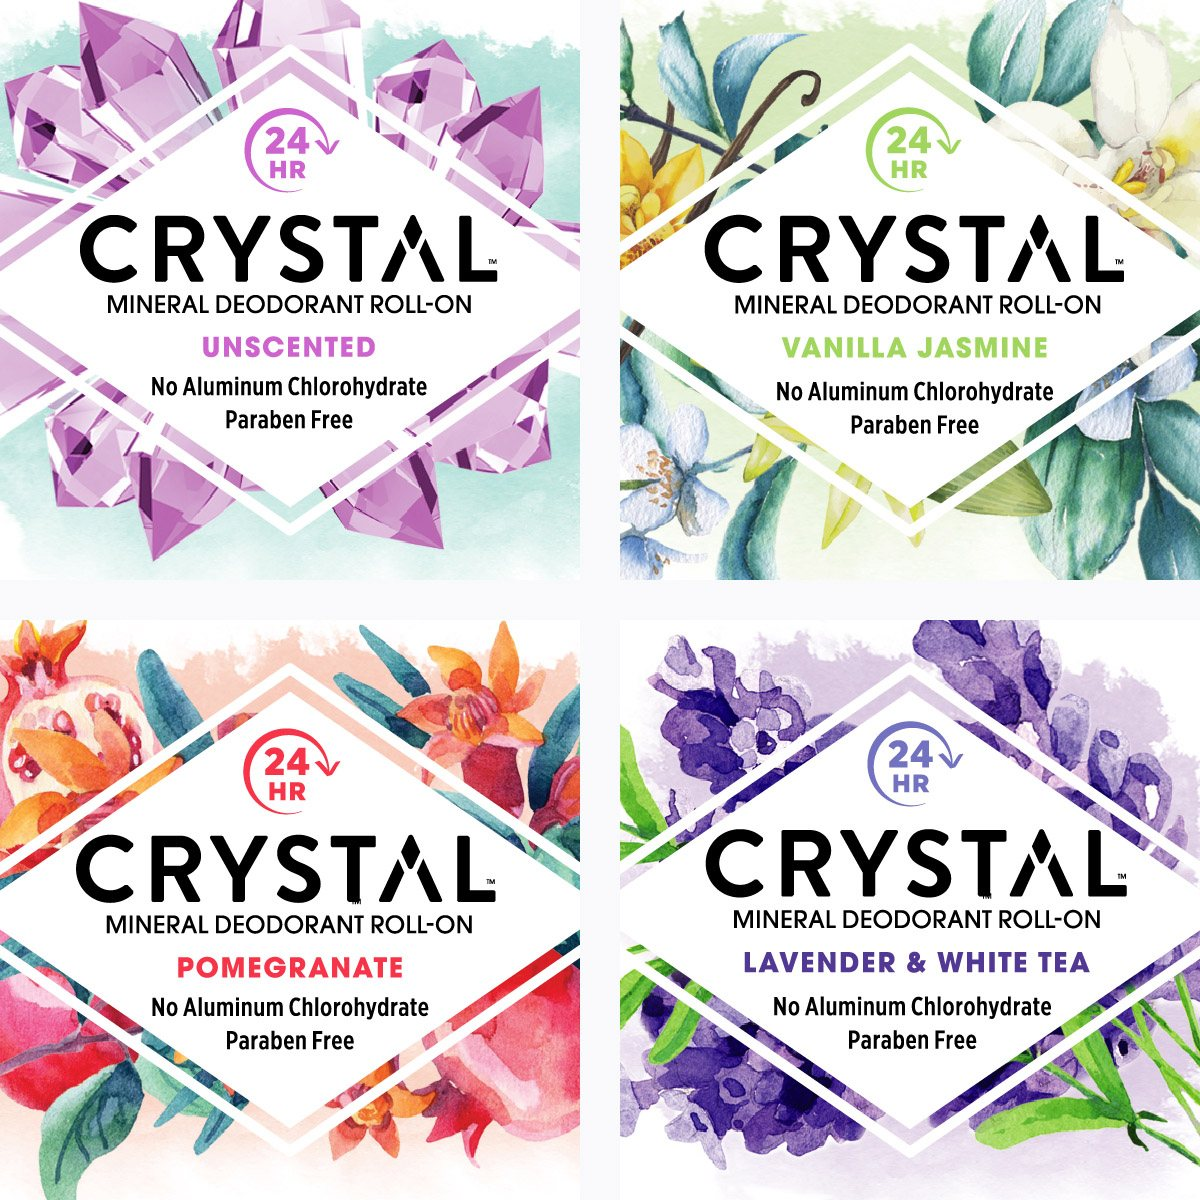 Crystal Deodorant Front Label Graphics